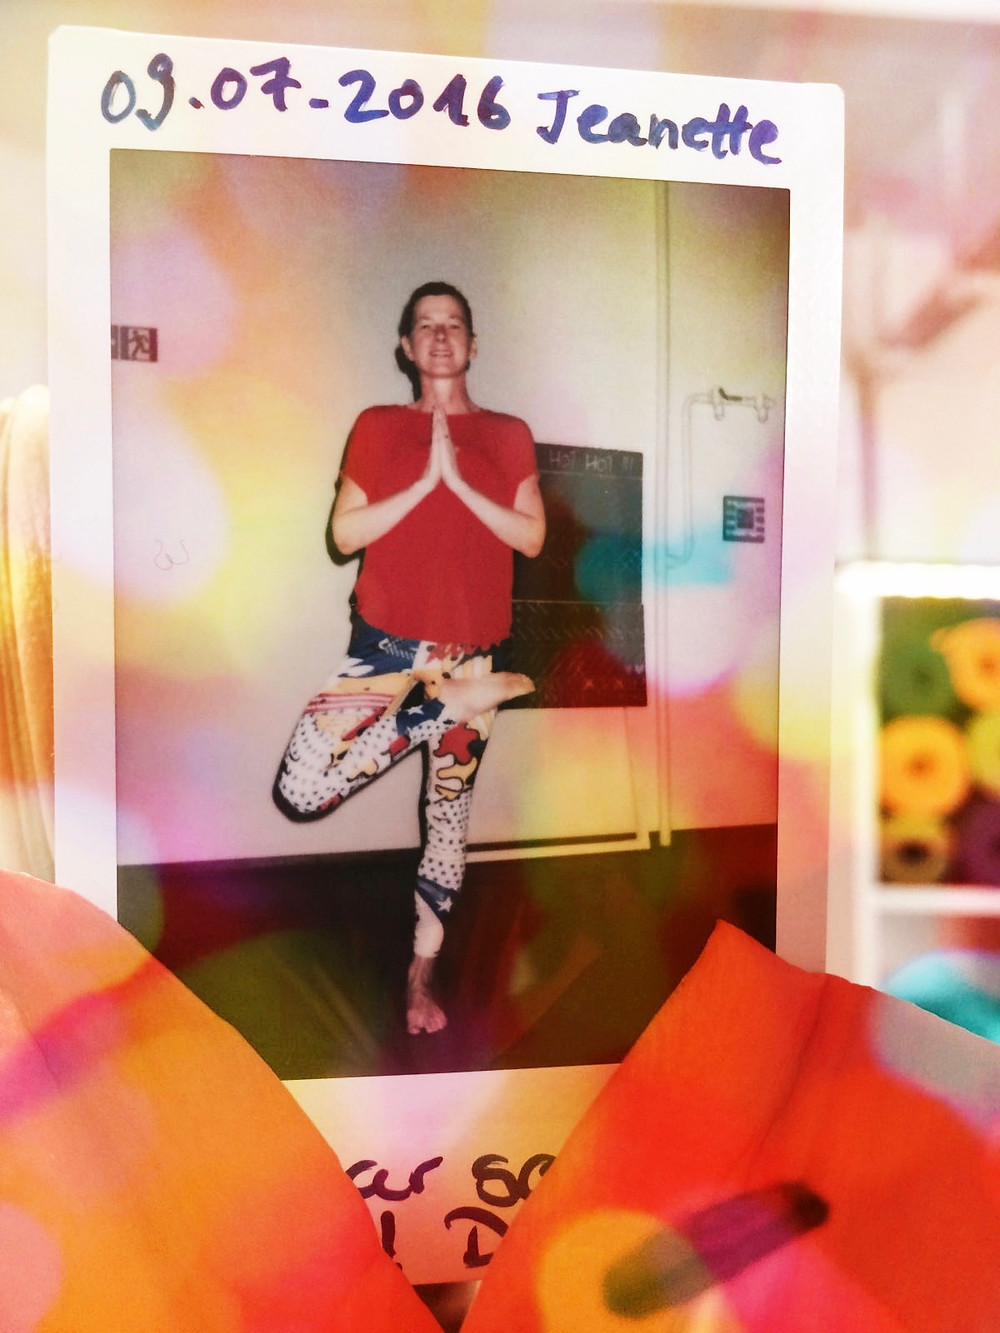 30 Tage Hot Yoga Challenge Jeanette